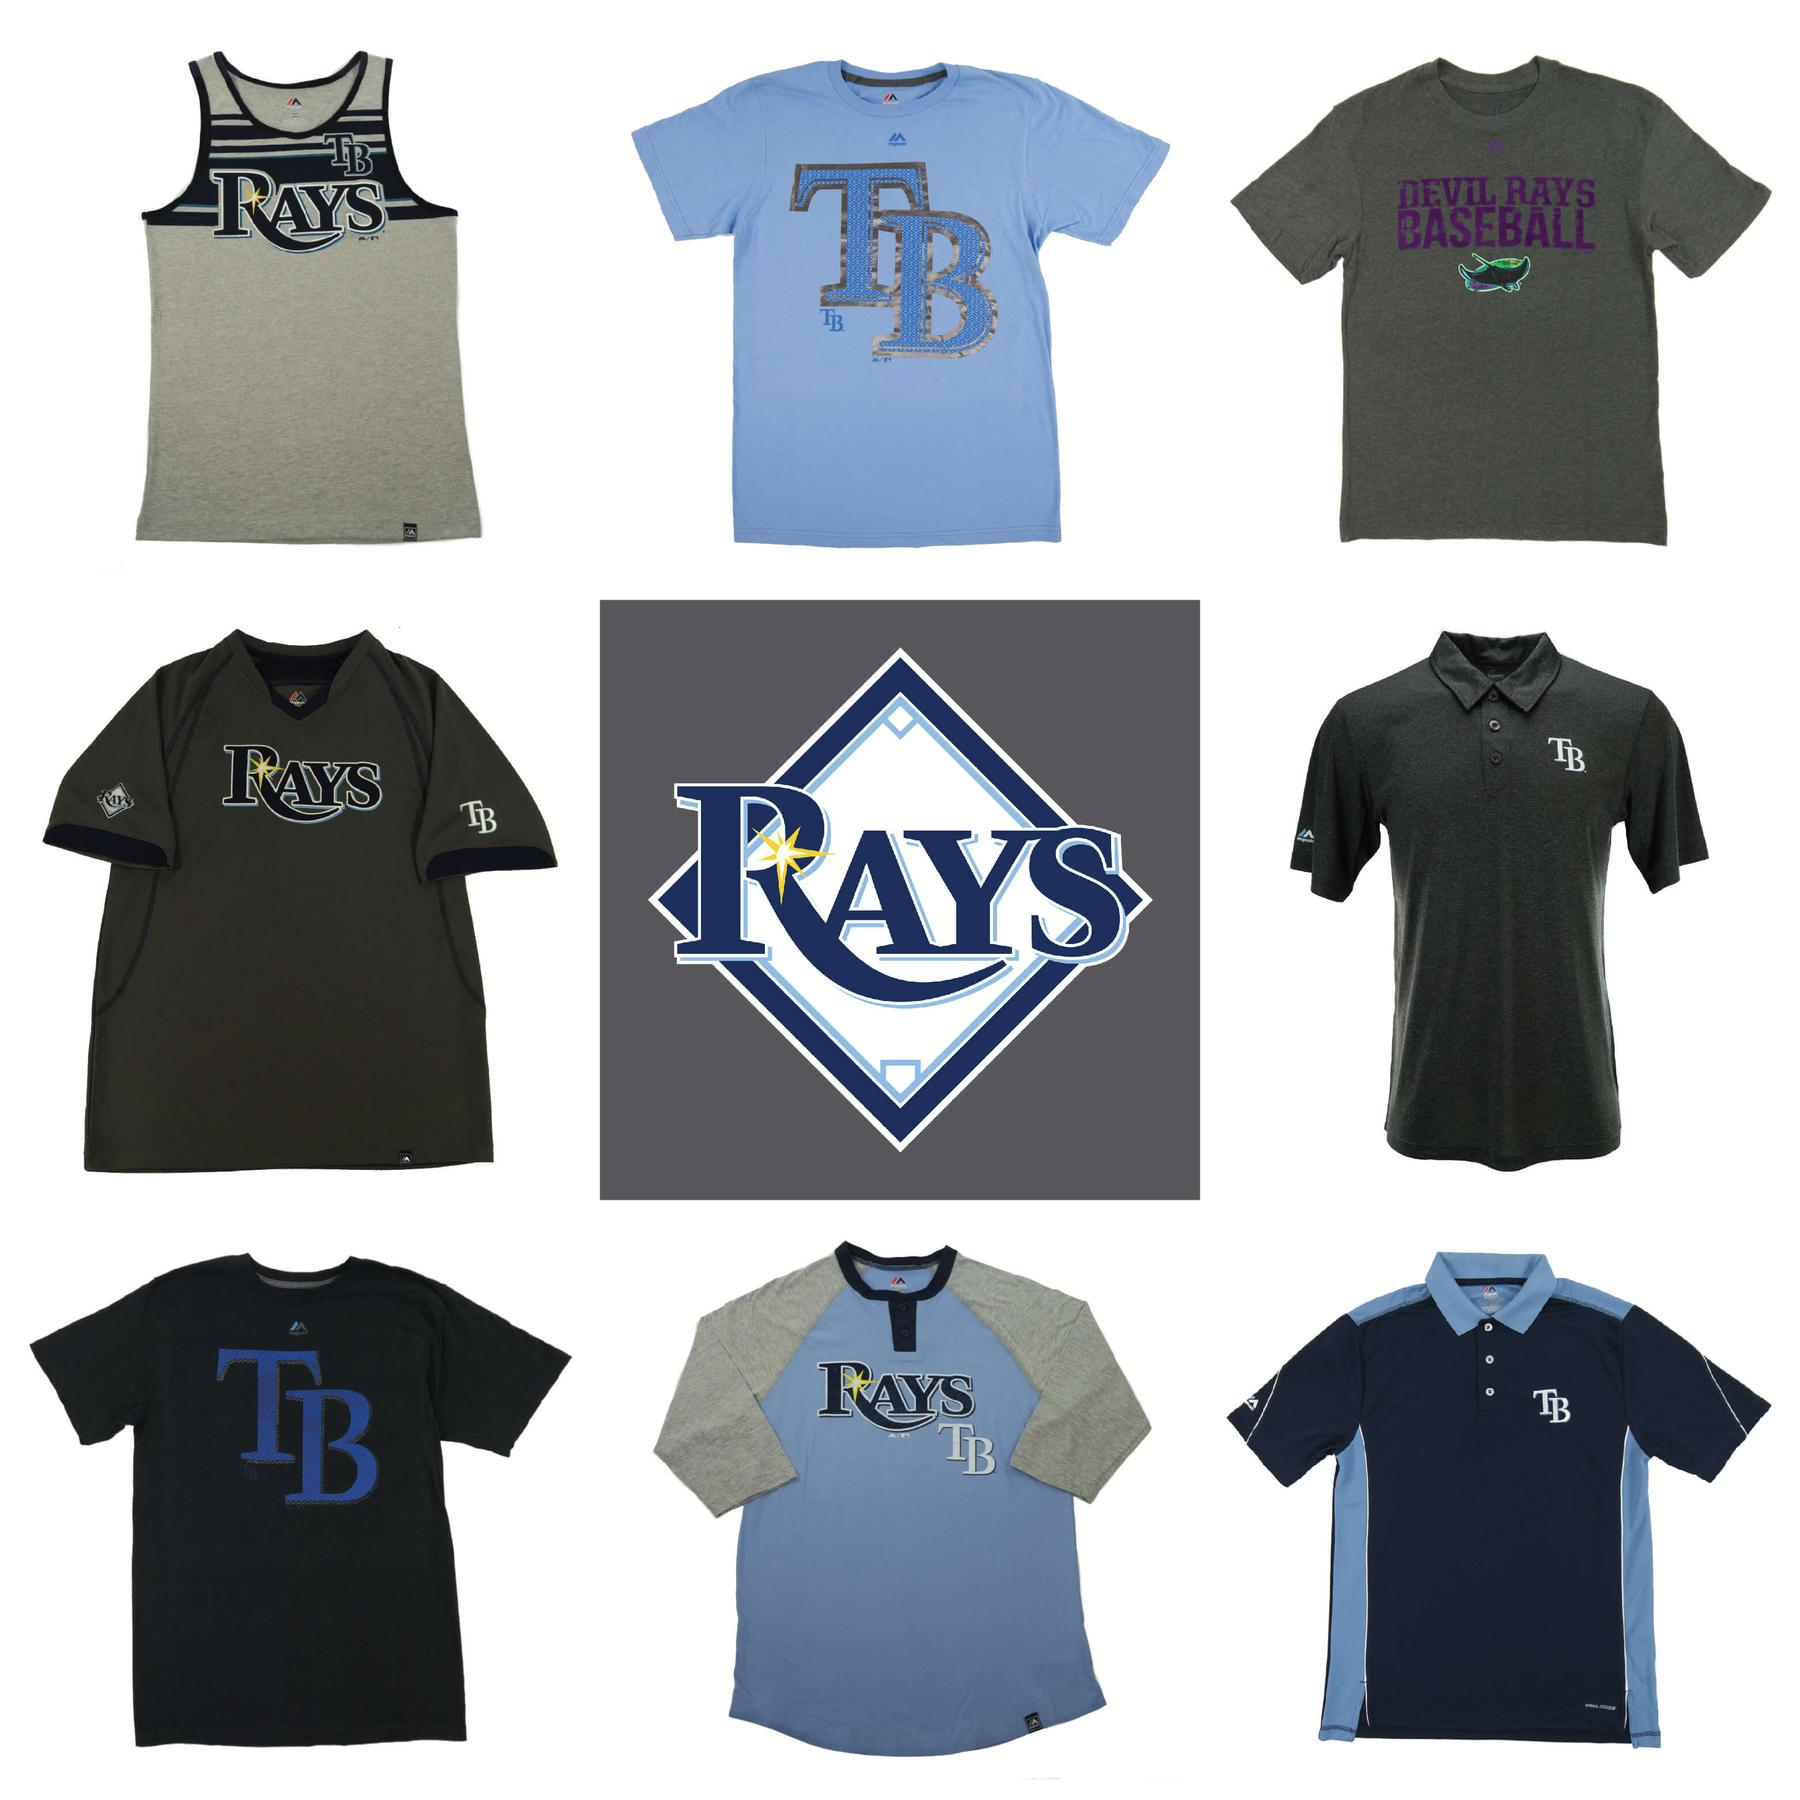 tampa bay rays officially licensed mlb apparel liquidation 1 590 items 55 000 srp da card world tampa bay rays officially licensed mlb apparel liquidation 1 590 items 55 000 srp